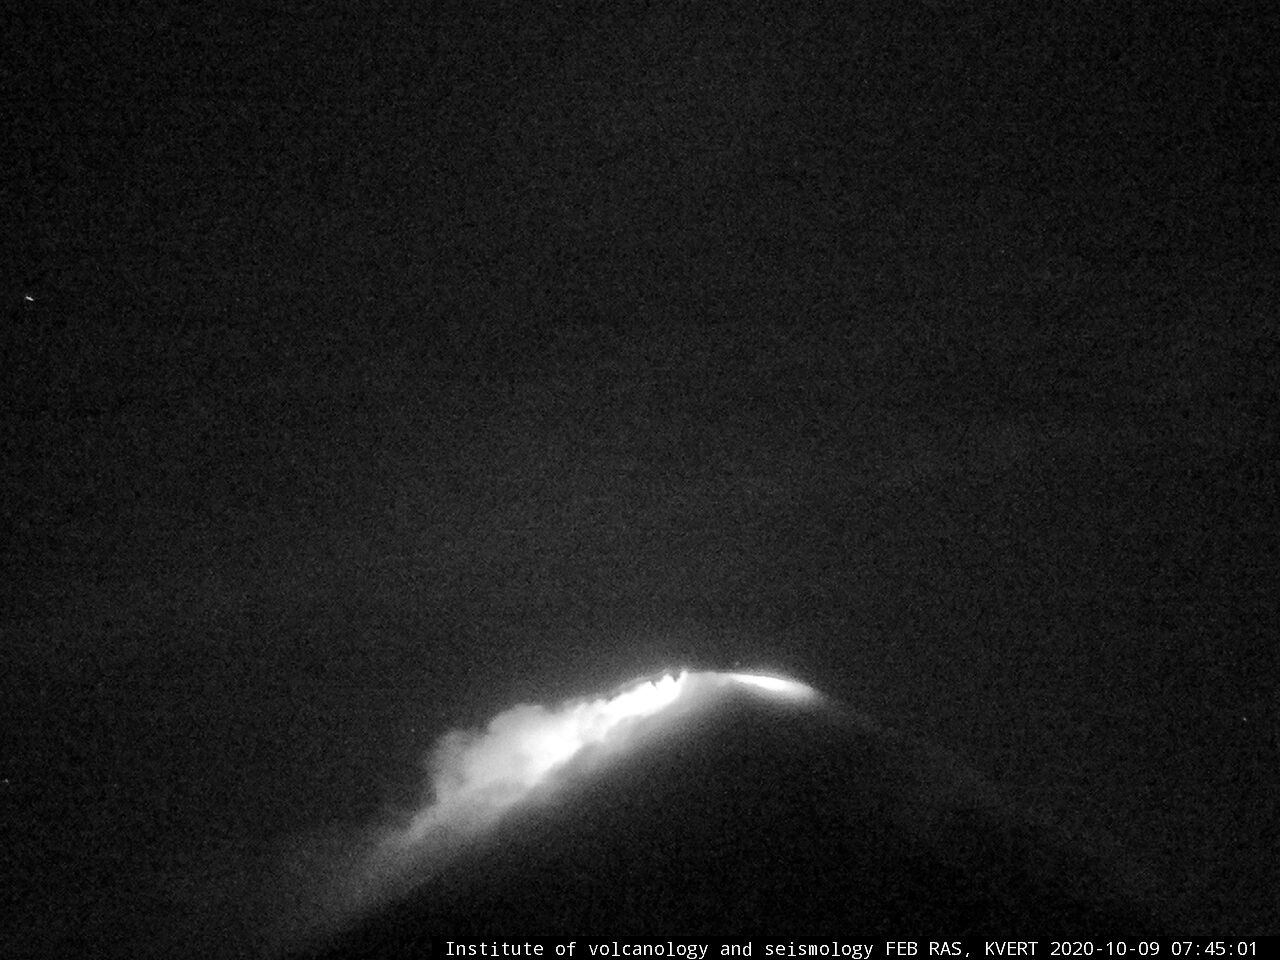 Klyuchevskoy  - 09.10.2020  / 7h45 - View from F.Yu. Levinson-Lessing Kamchatkan Volcanological Station - IVS, FEB, RAS / KVERT